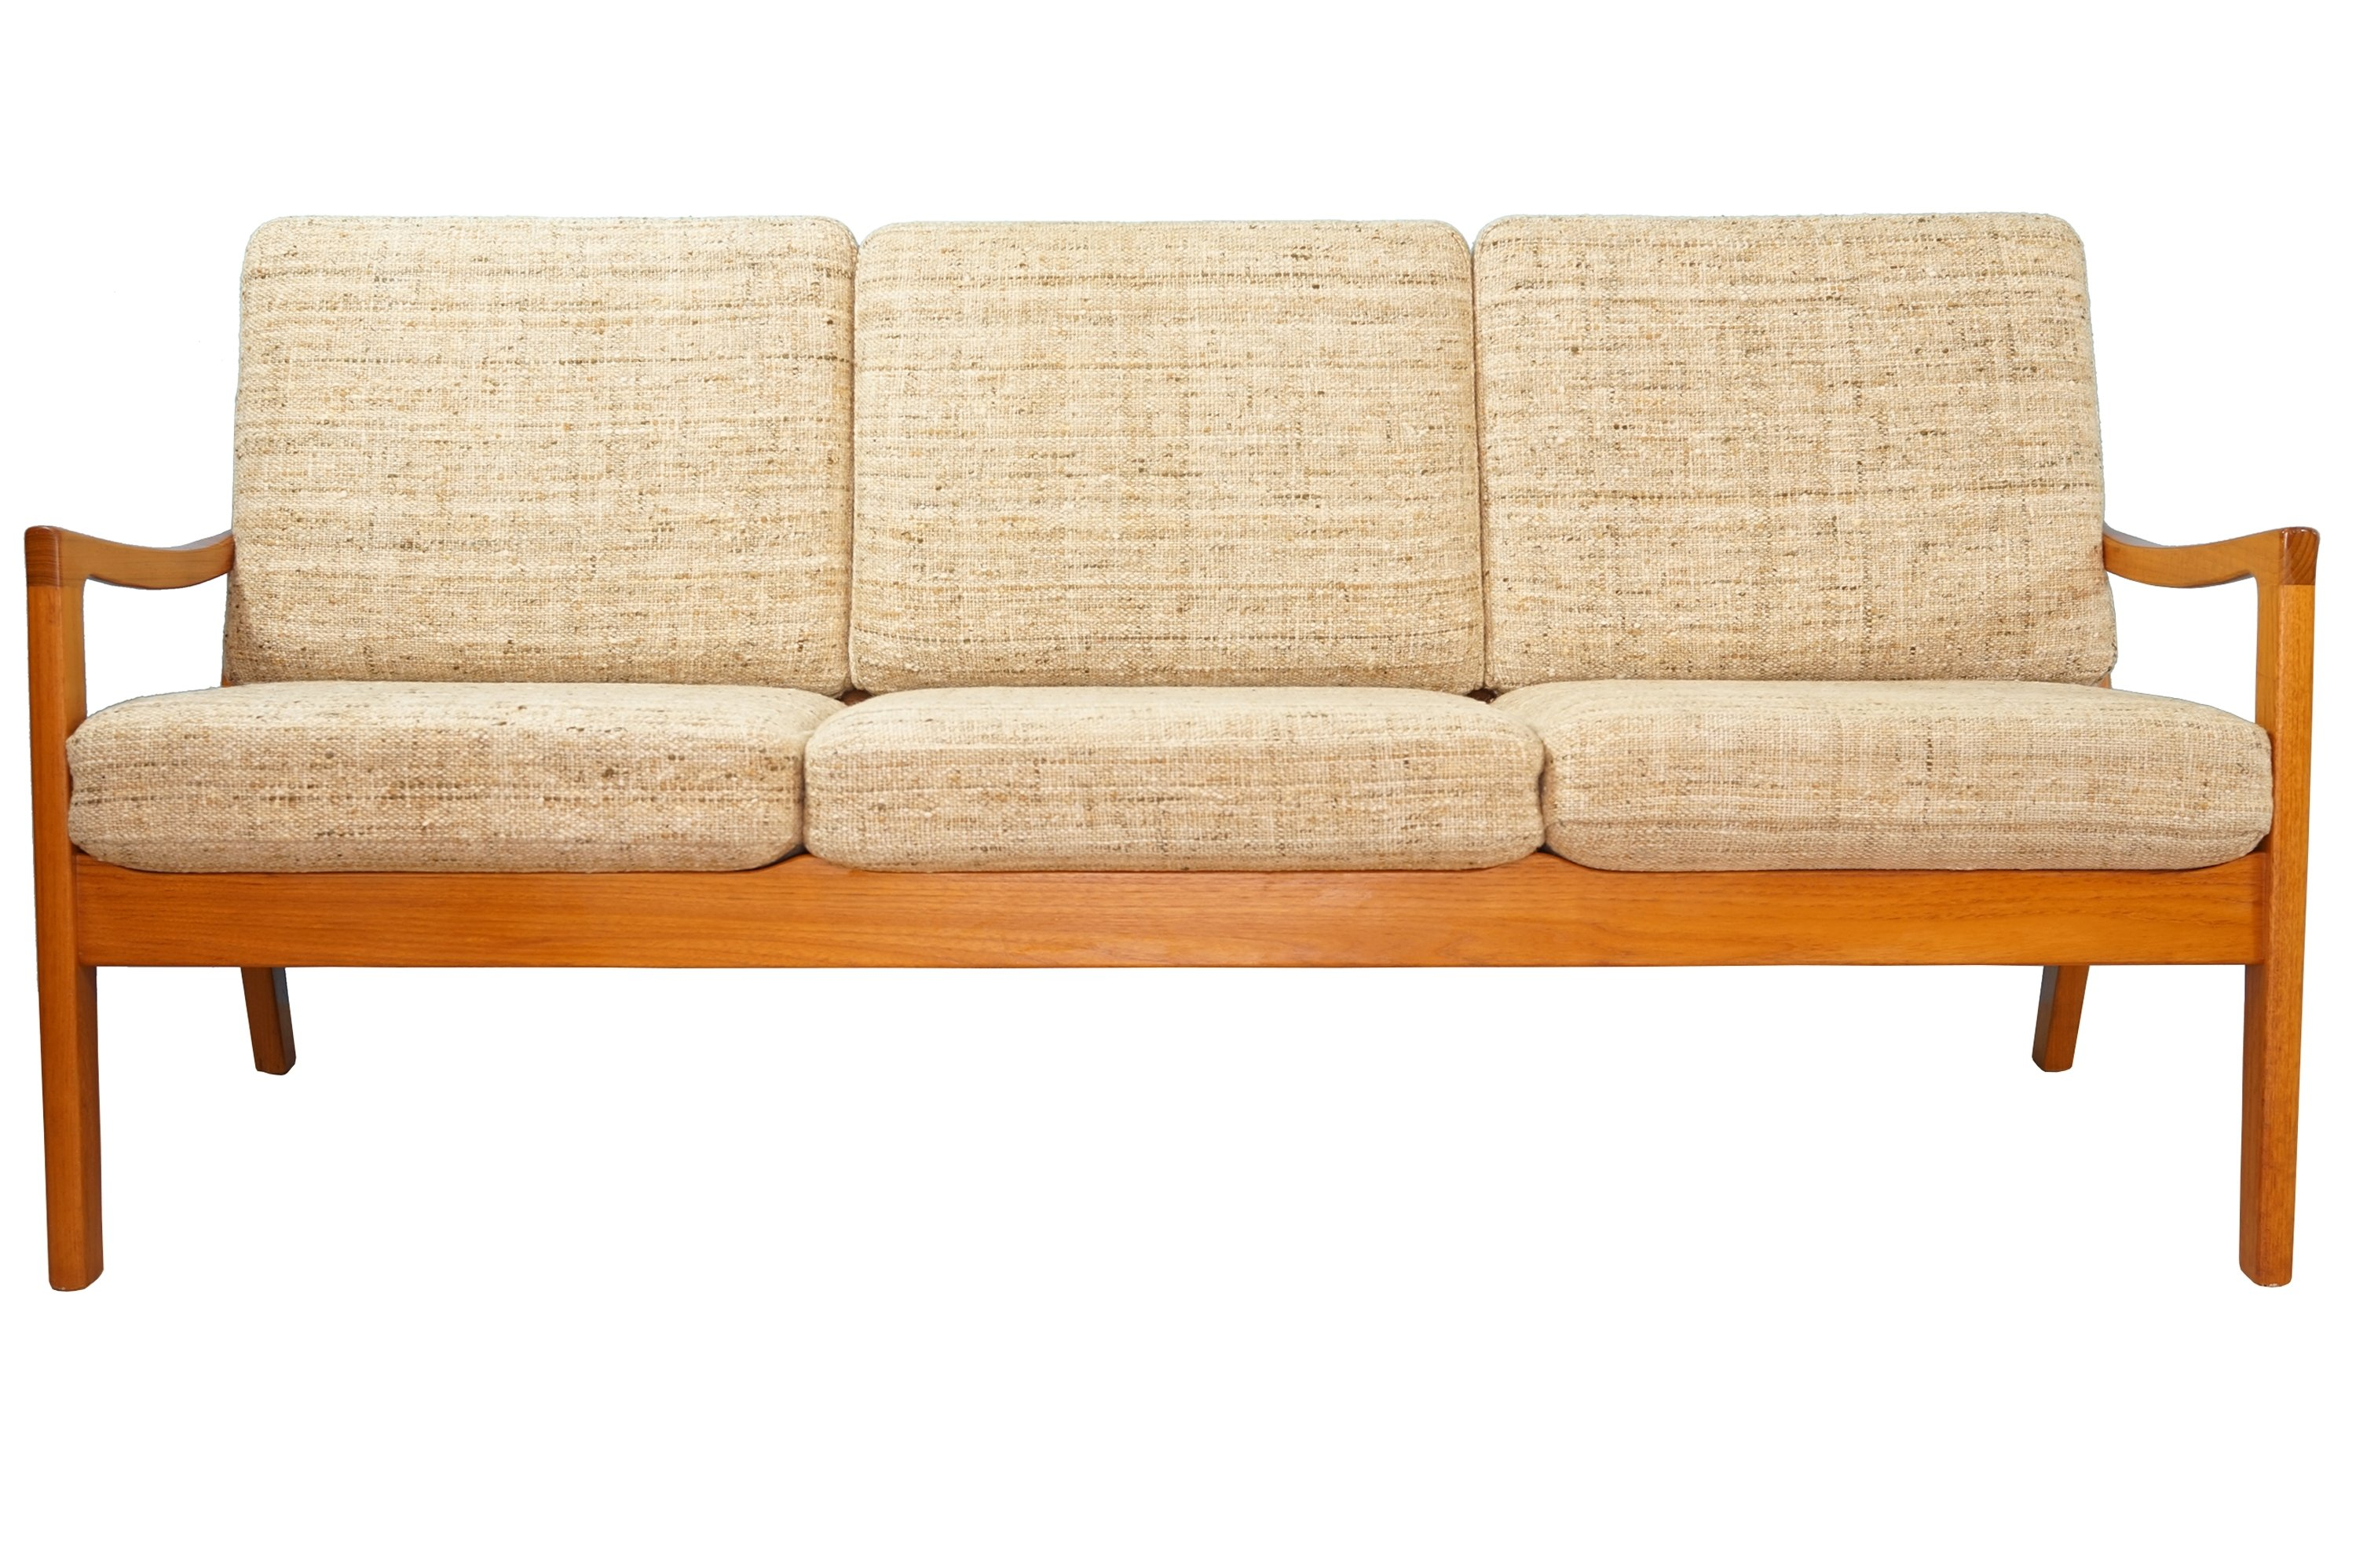 Three Seat Teak Sofa By Ole Wanscher For Poul Jeppesen